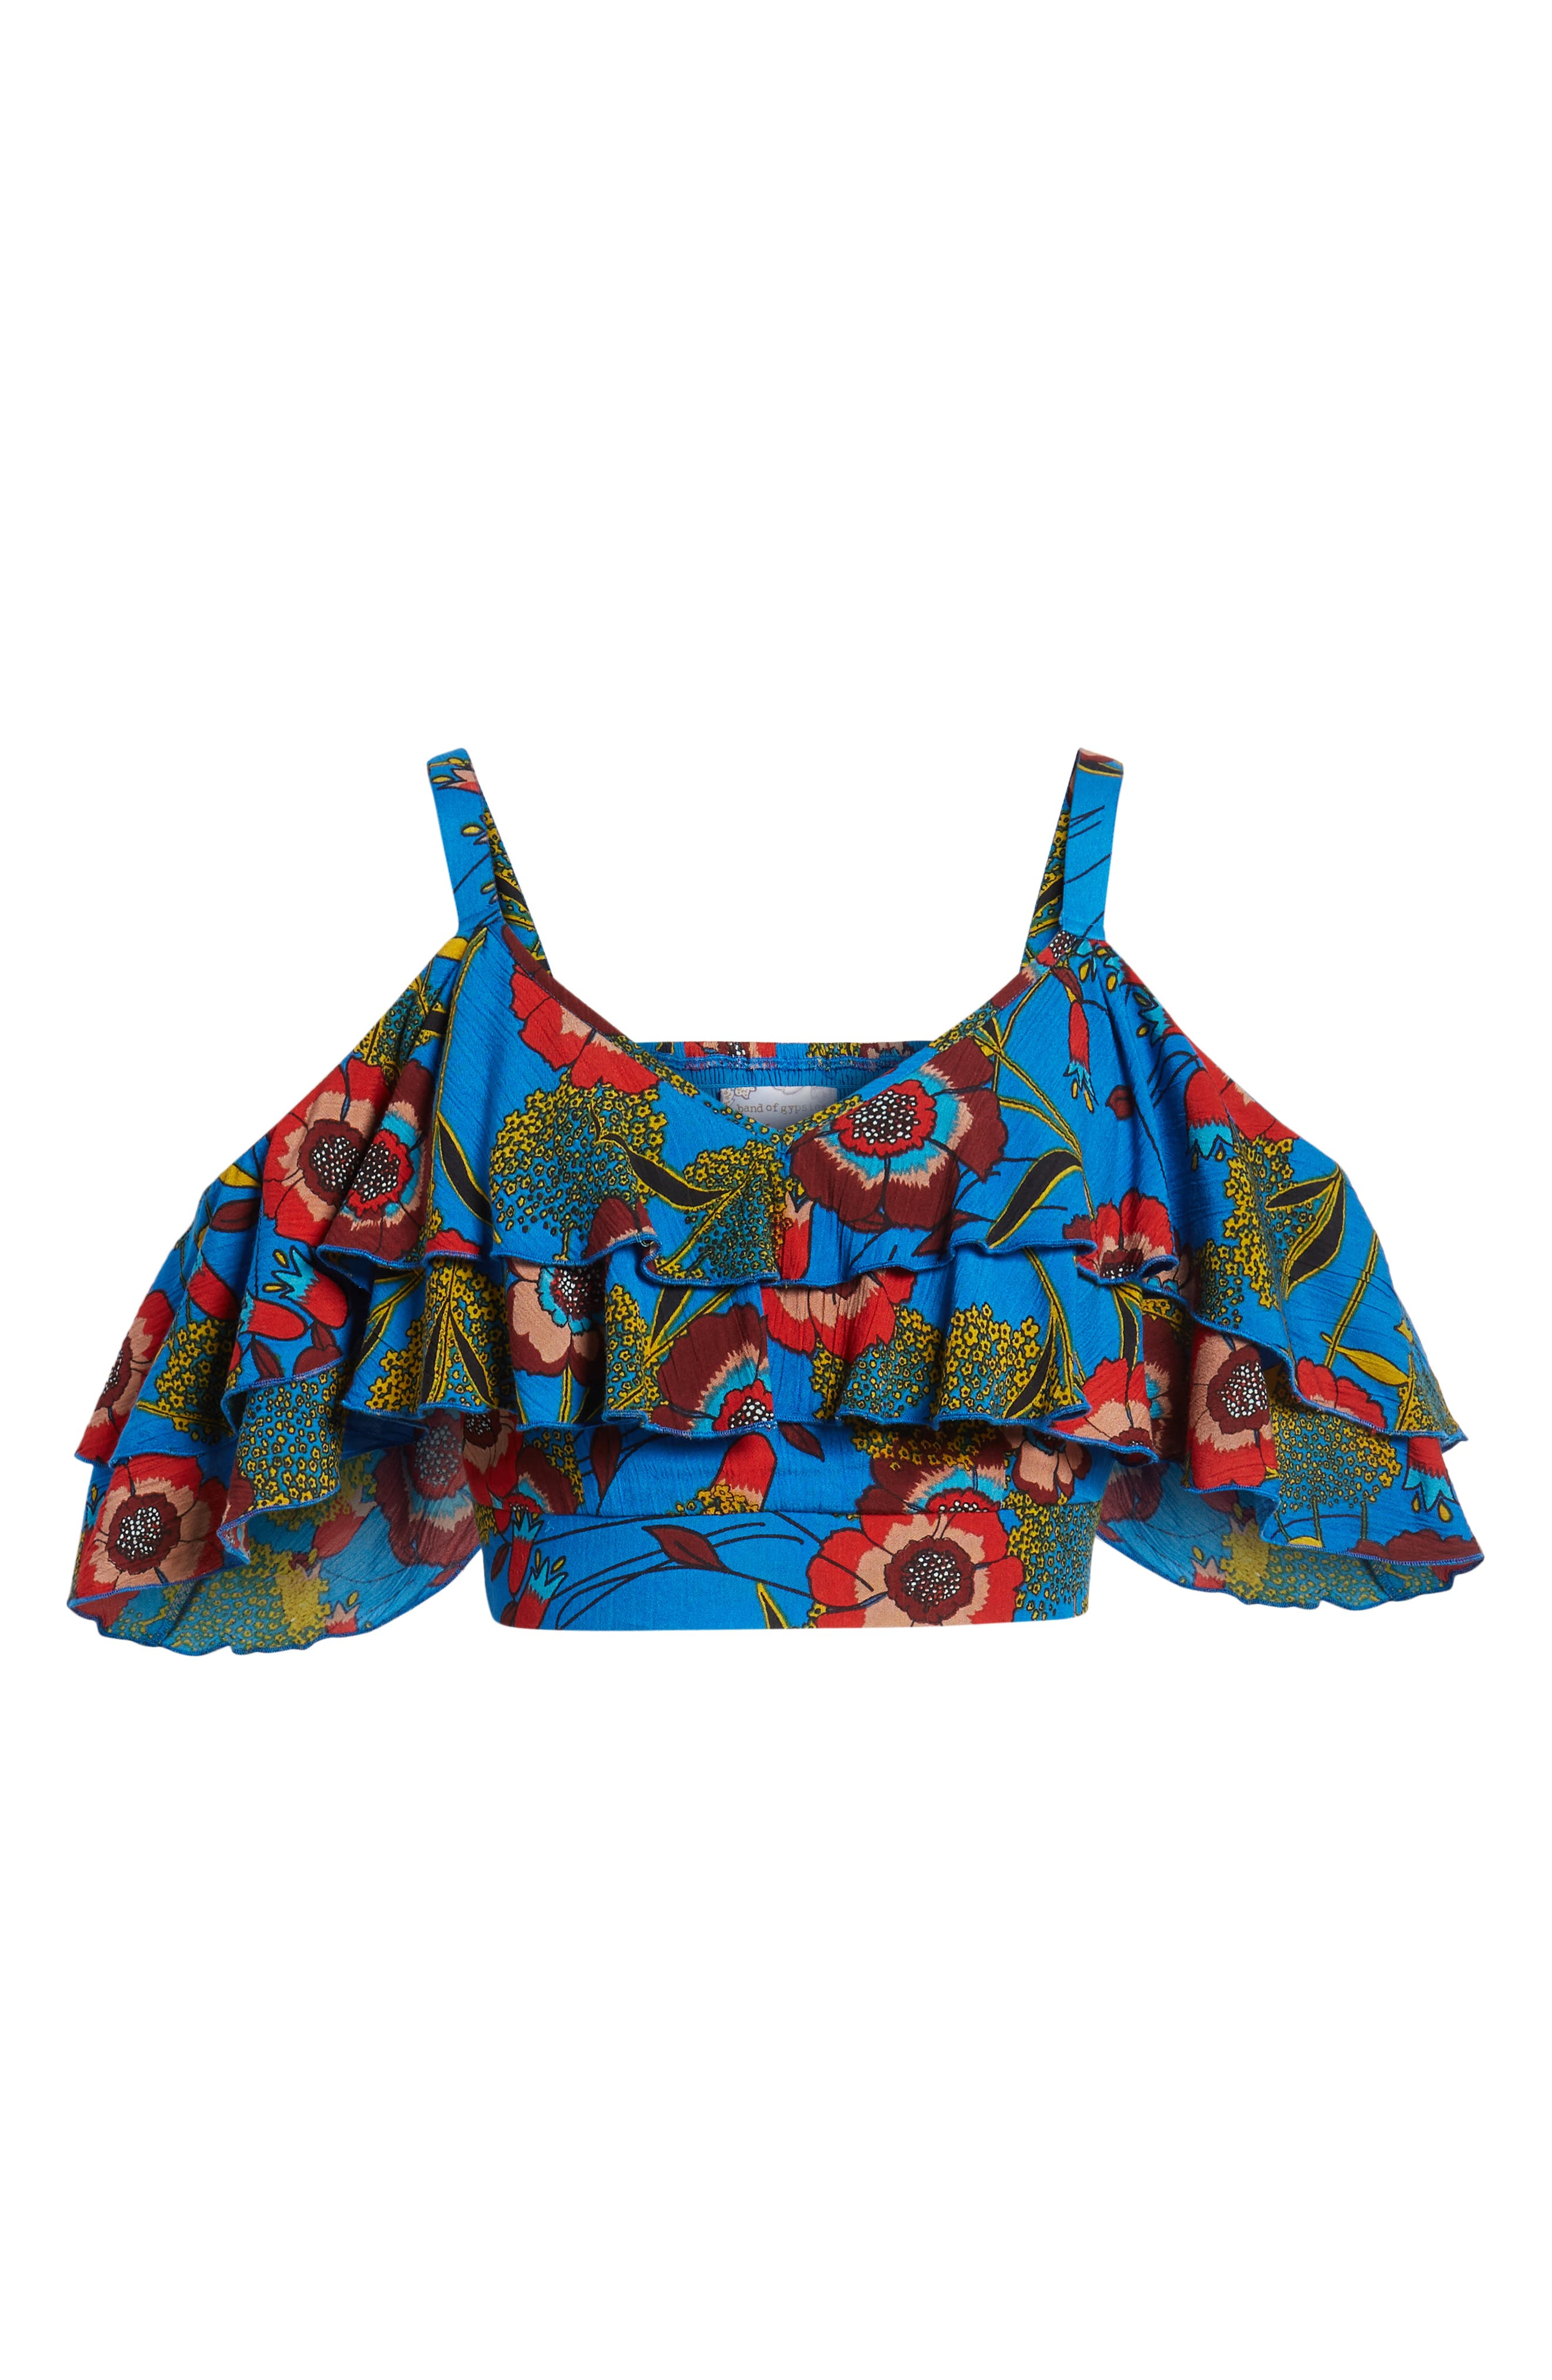 Heirloom Blossom Cold Shoulder Crop Top,                             Alternate thumbnail 7, color,                             Royal/ Blue/ Red